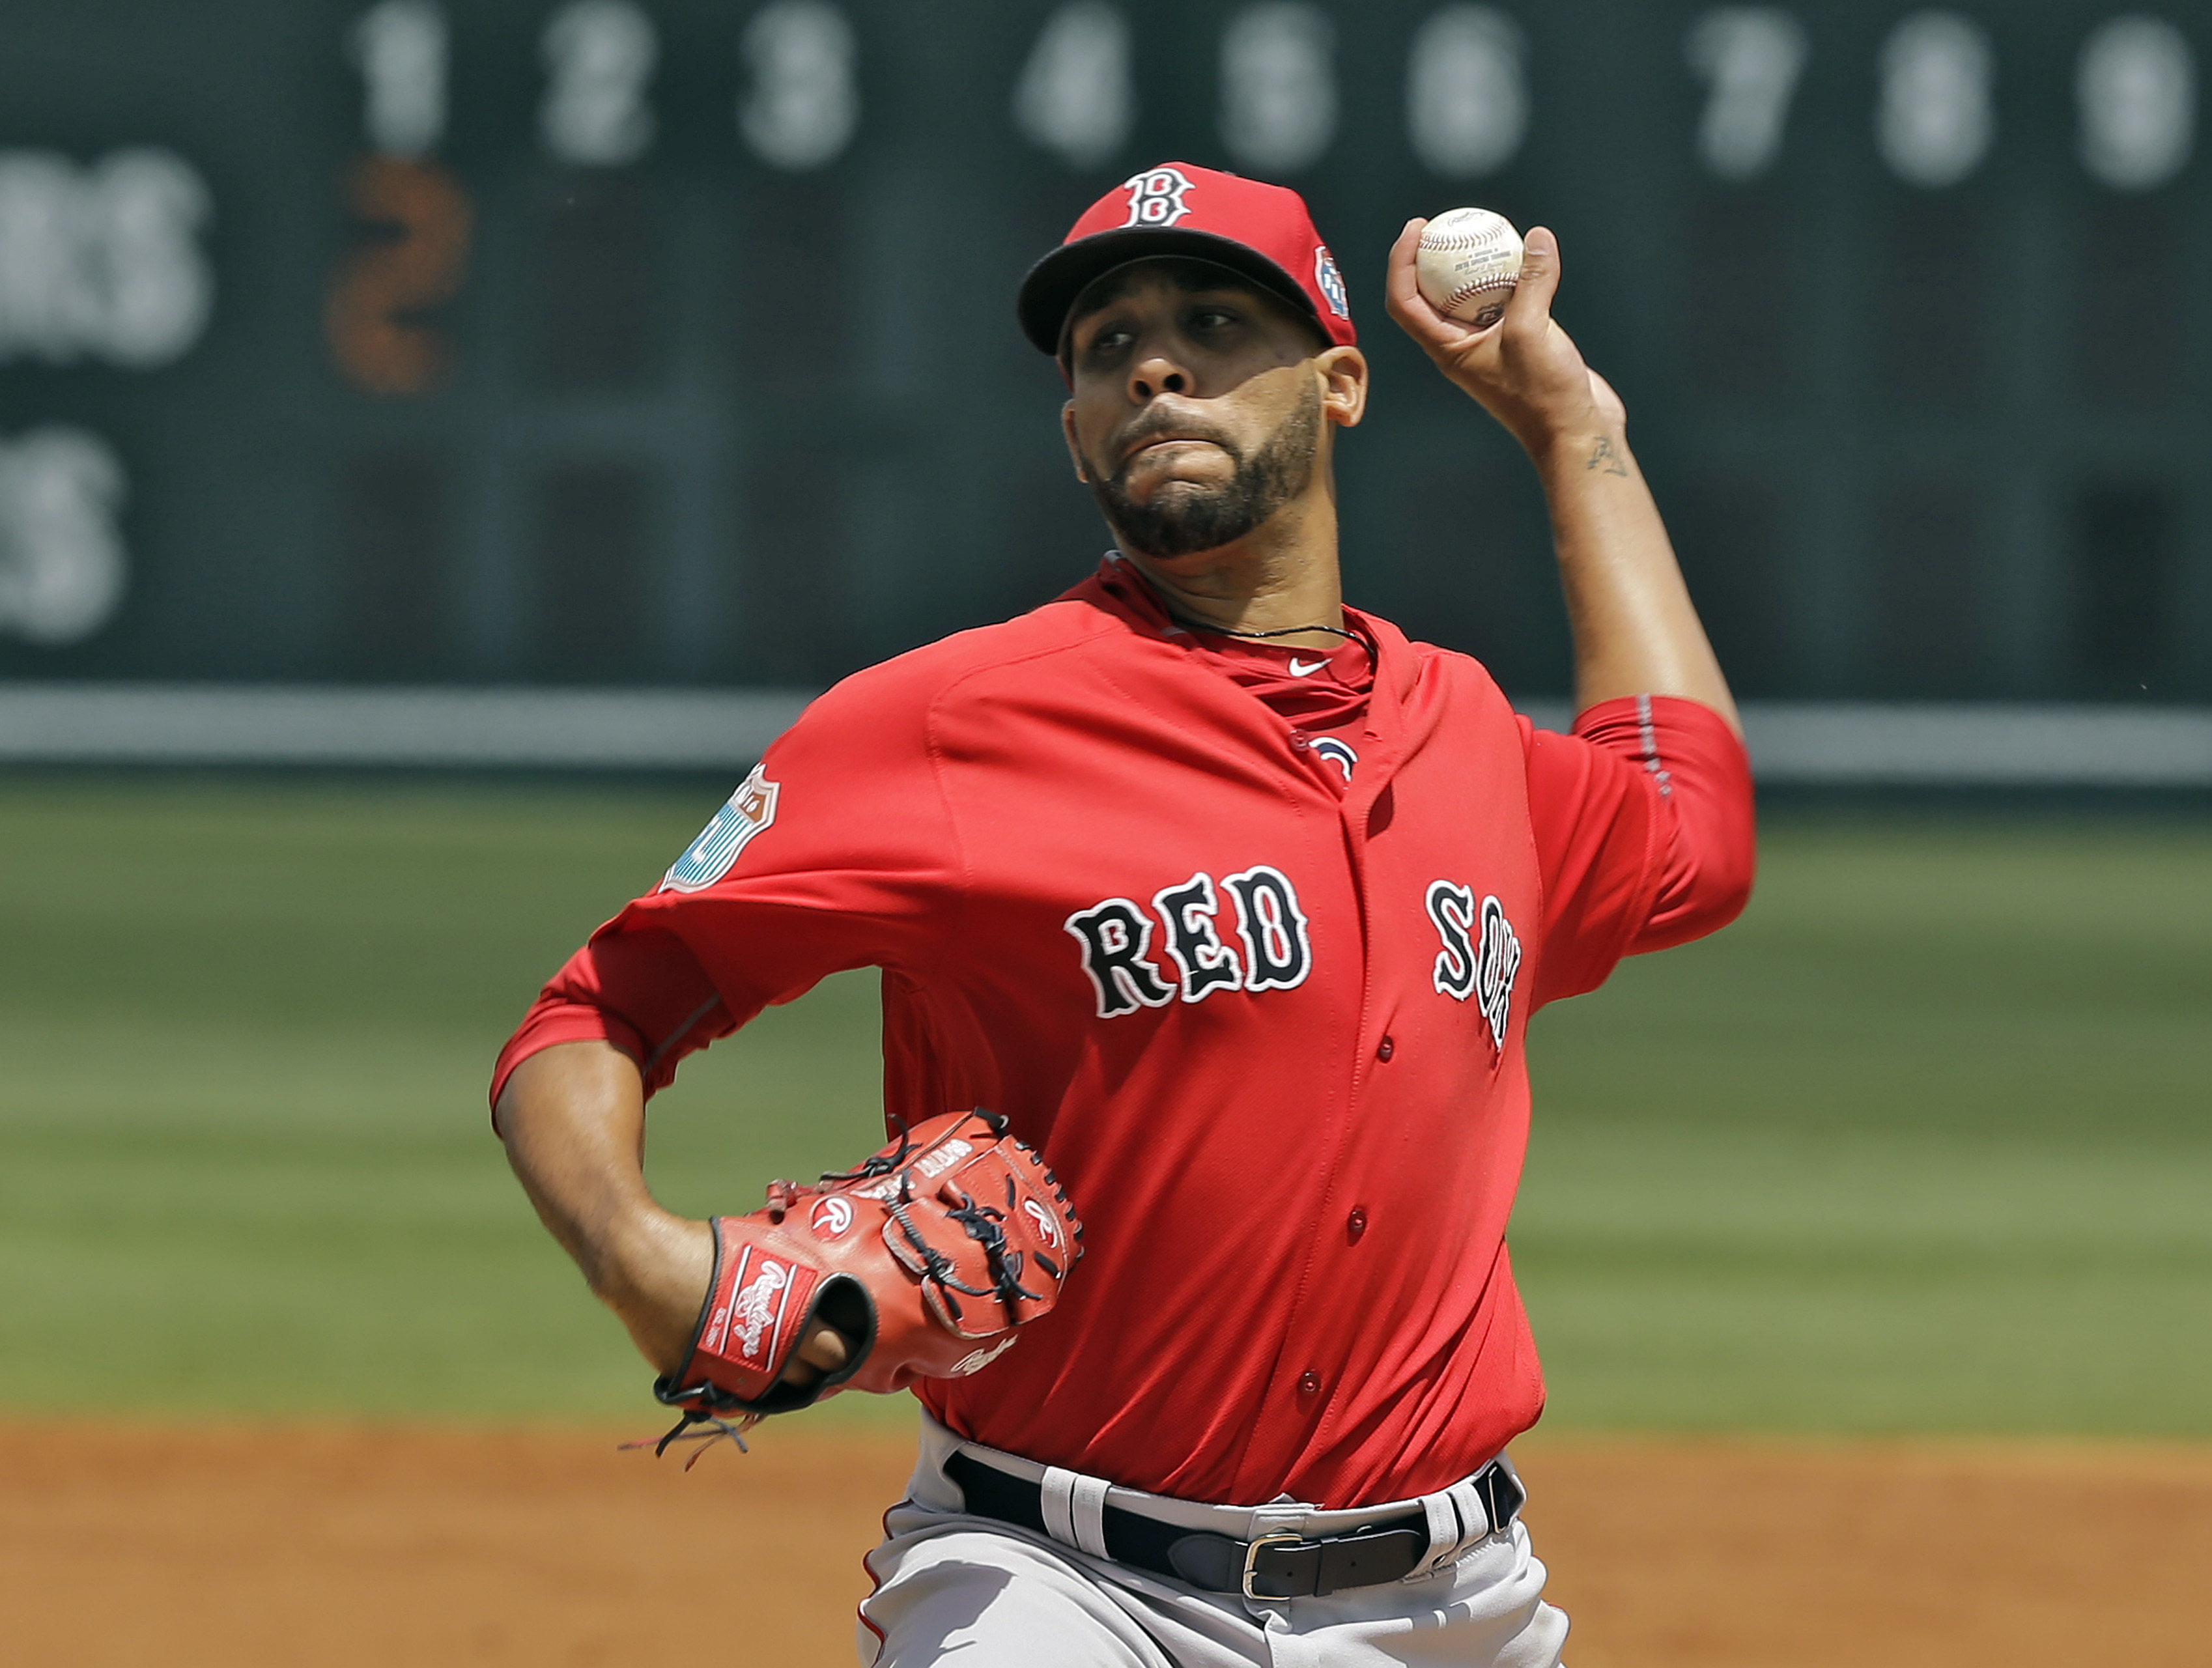 Boston Red Sox's David Price pitches to the Pittsburgh Pirates during the first inning of a spring training baseball game Wednesday, March 30, 2016, in Bradenton, Fla. (AP Photo/Chris O'Meara)